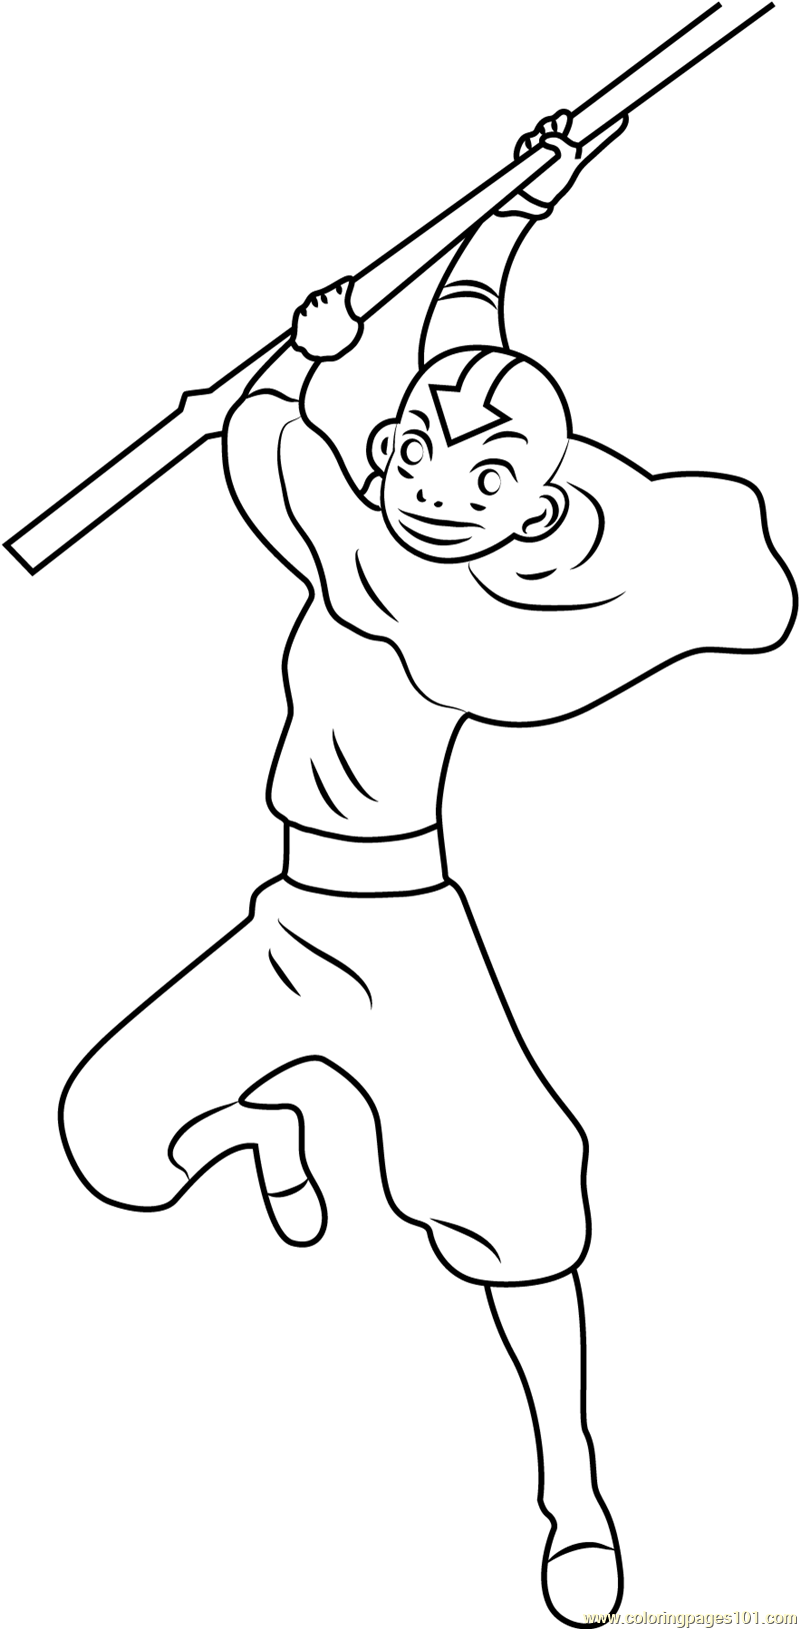 avatar the last airbender coloring pages toph - aang coloring page free avatar the last airbender